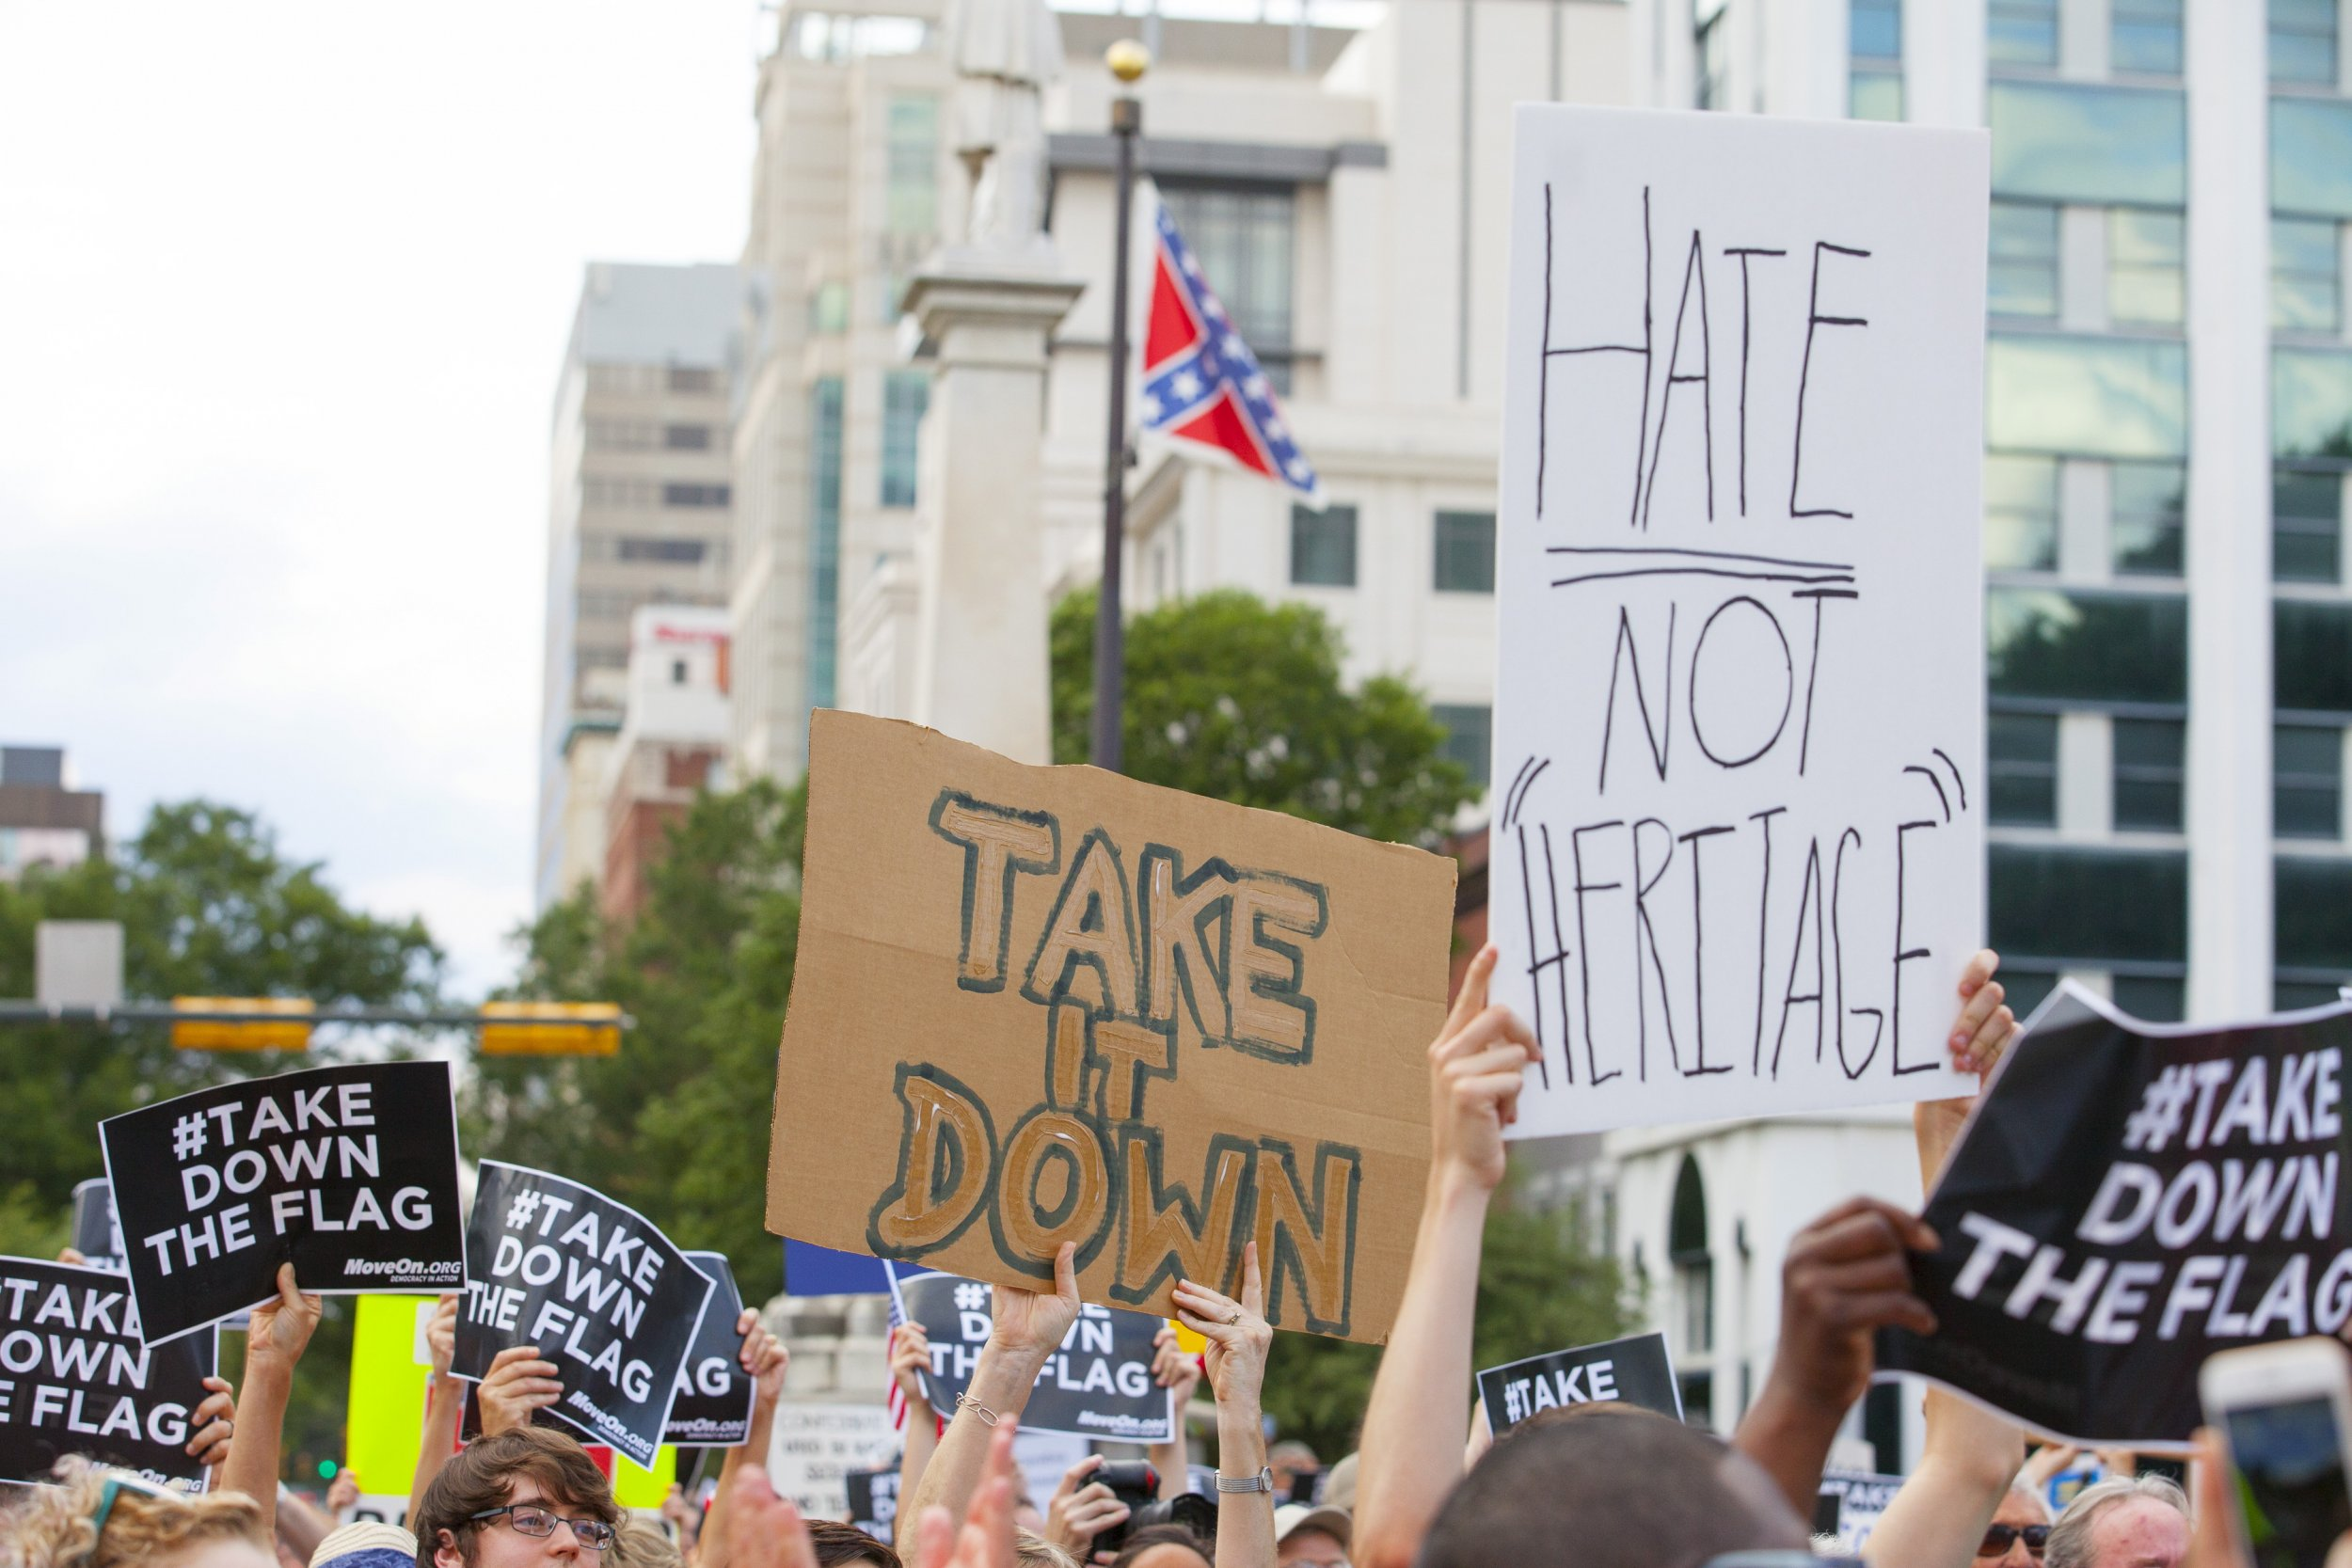 6-22-15 Confederate flag protest